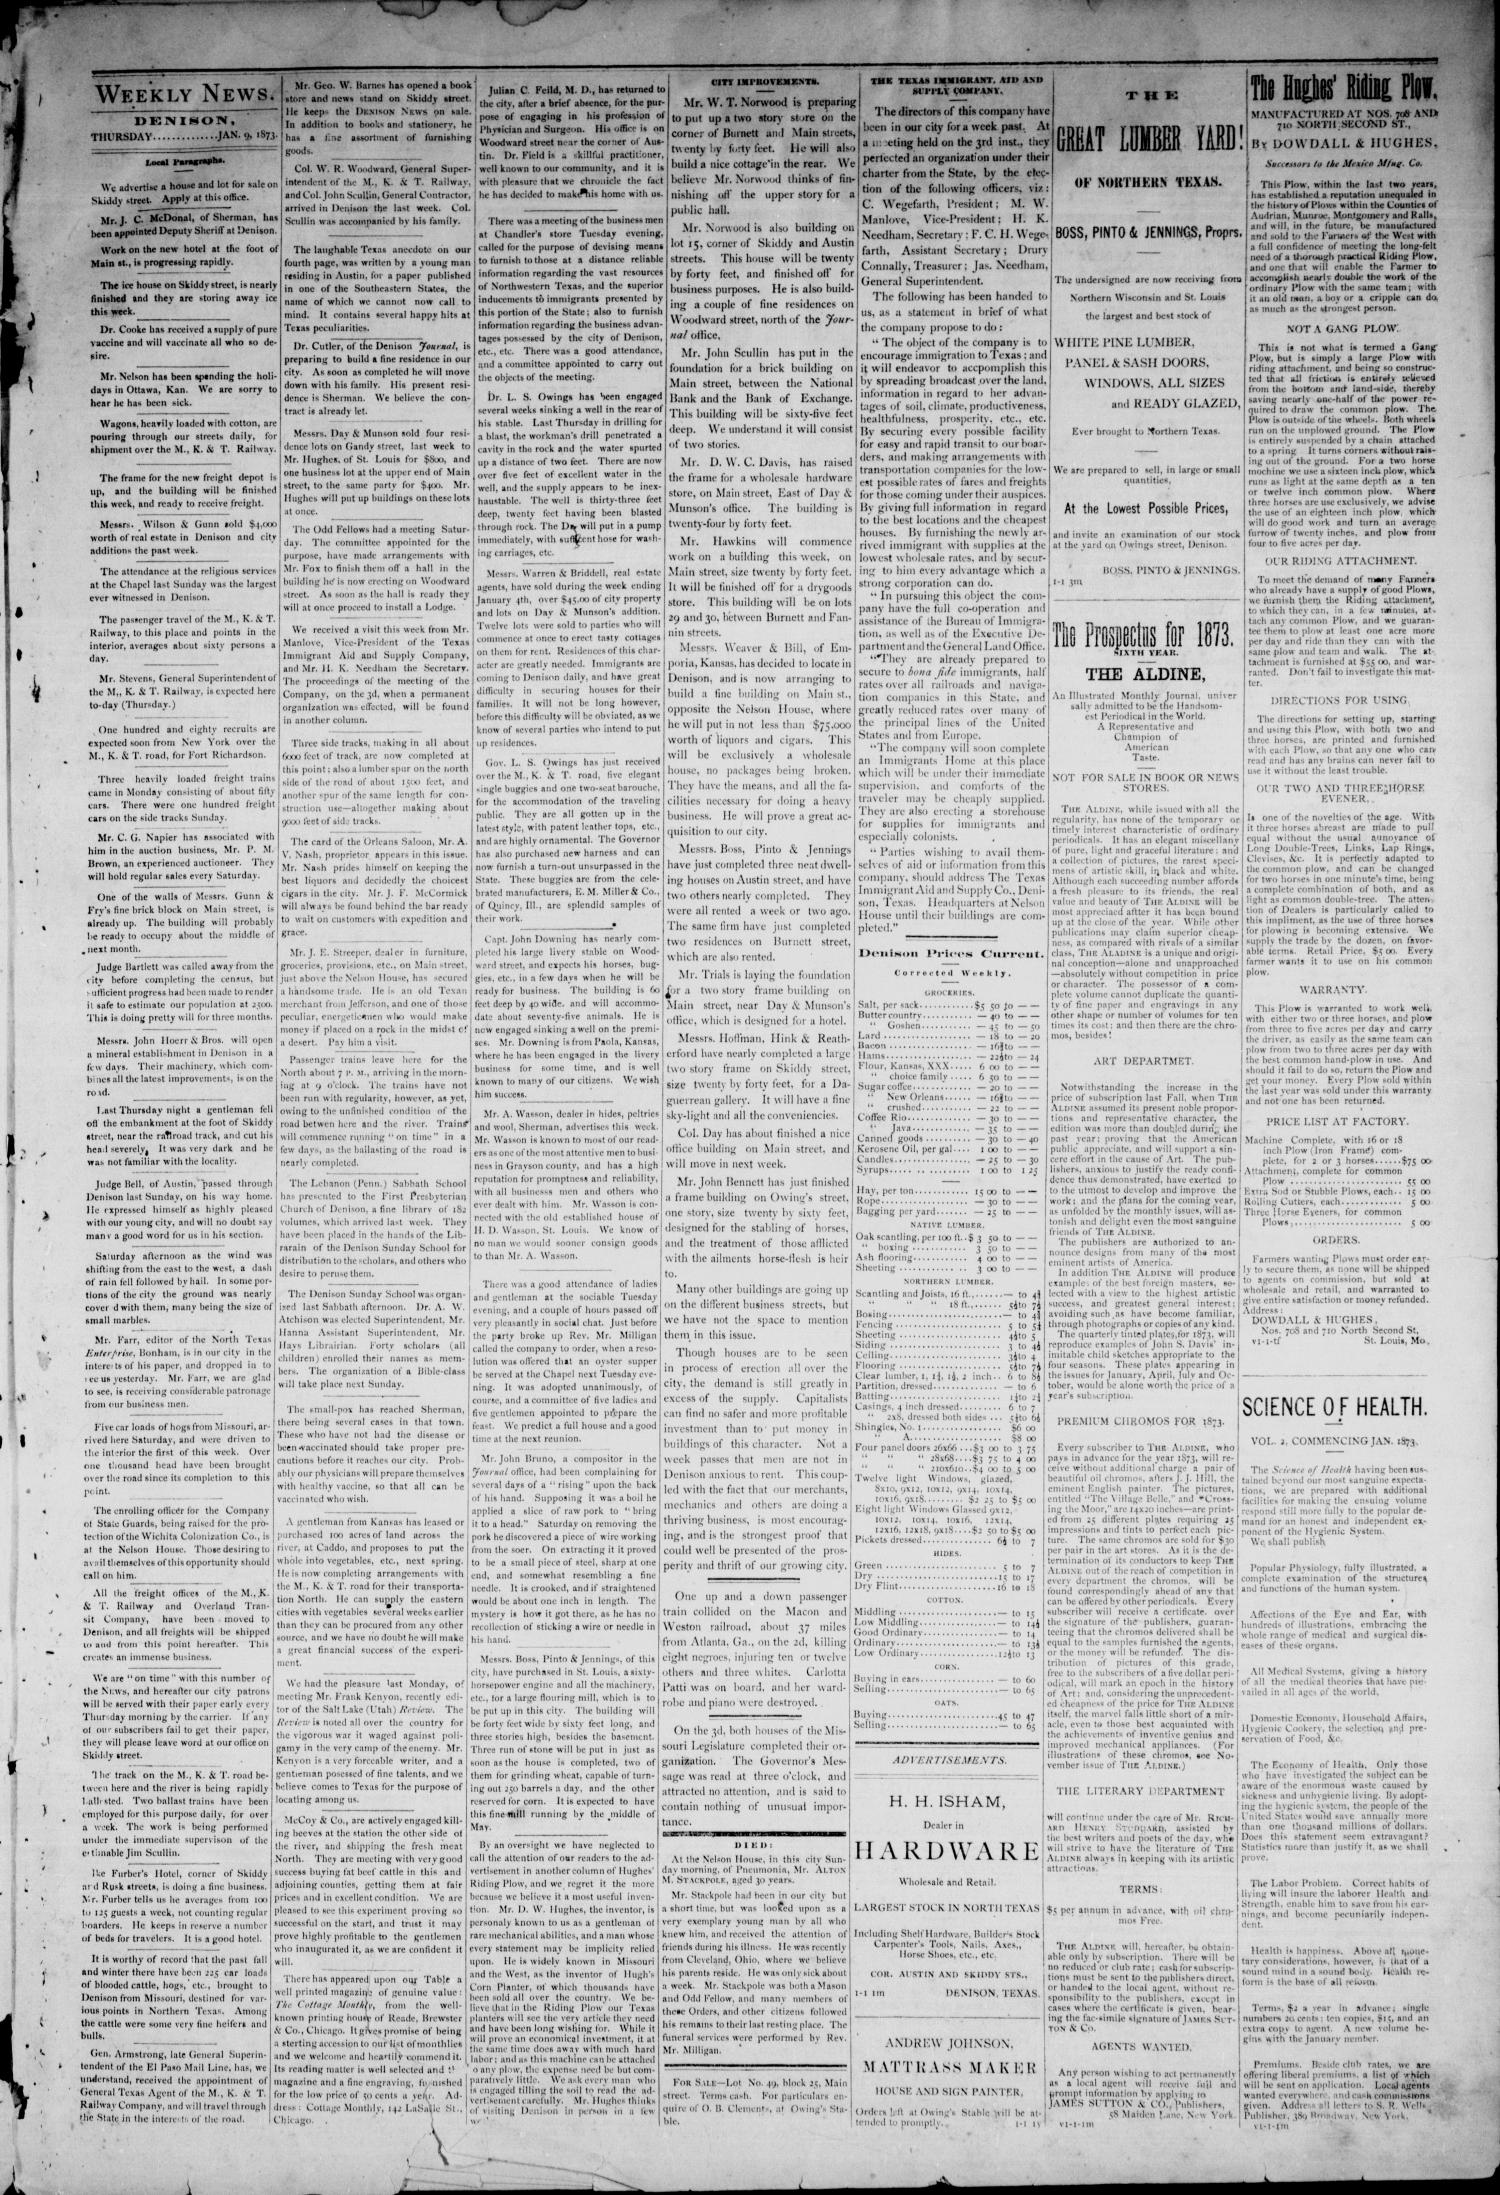 The Denison News. (Denison, Tex.), Vol. 1, No. 3, Ed. 1 Thursday, January 9, 1873                                                                                                      [Sequence #]: 3 of 4